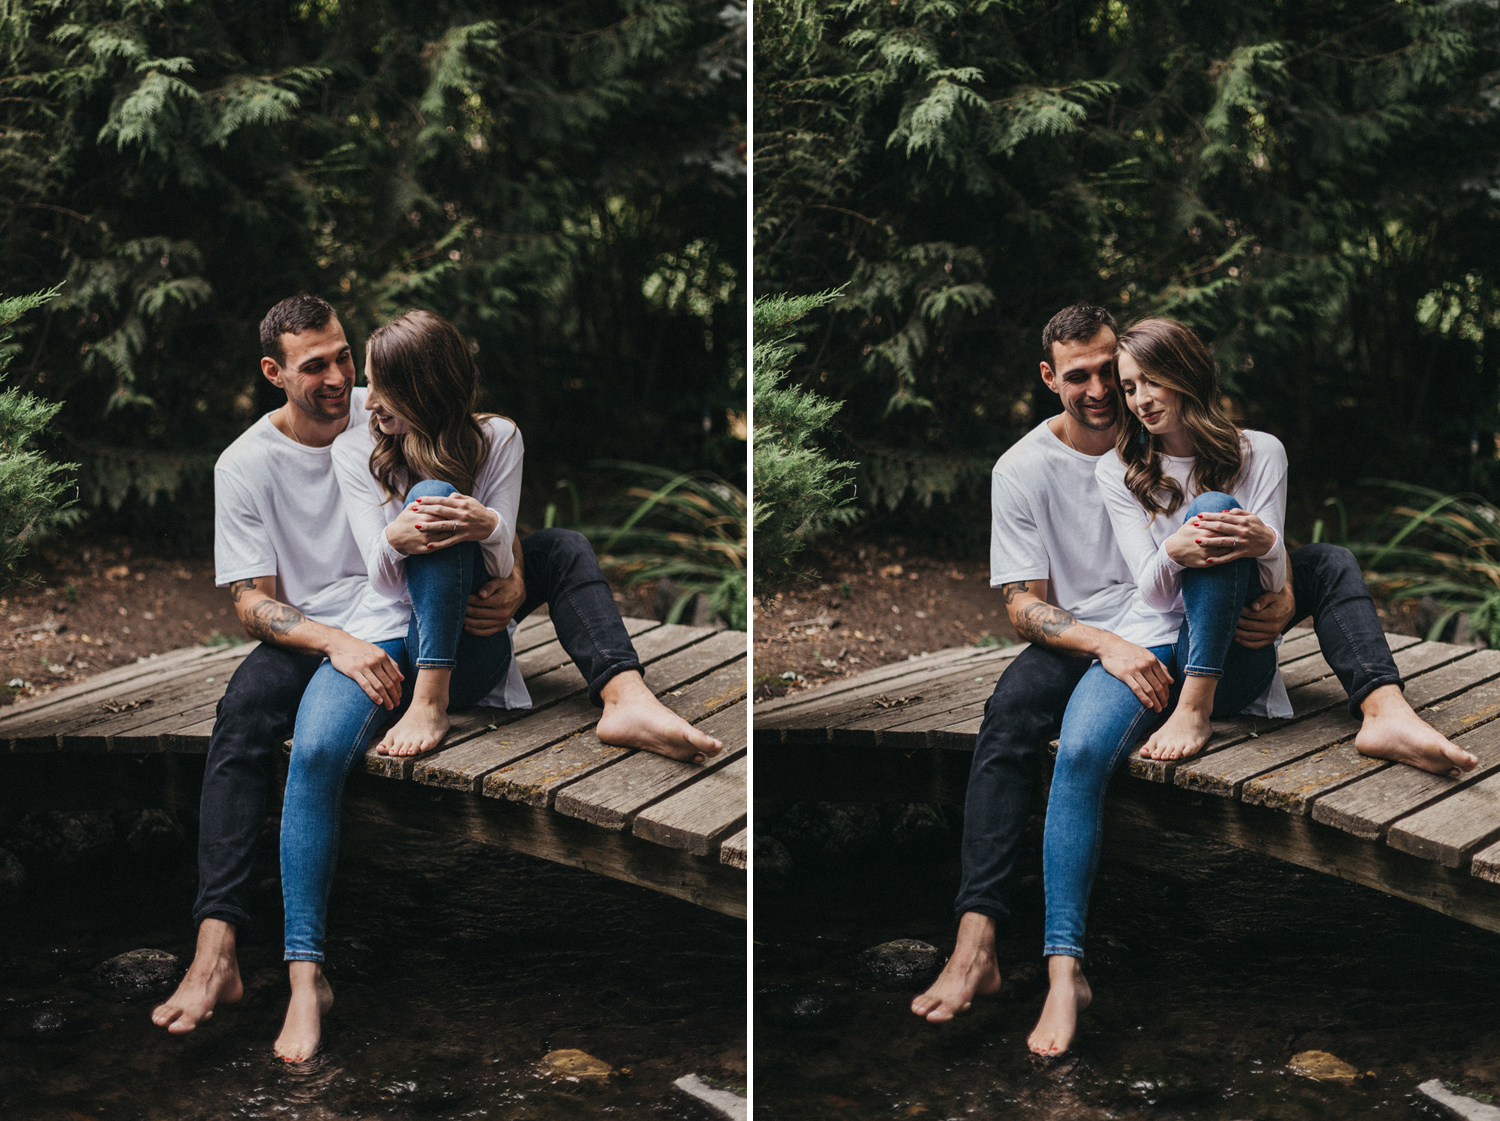 Walla Walla Engagement Photography Vineyard Basel Cellars 02.JPG